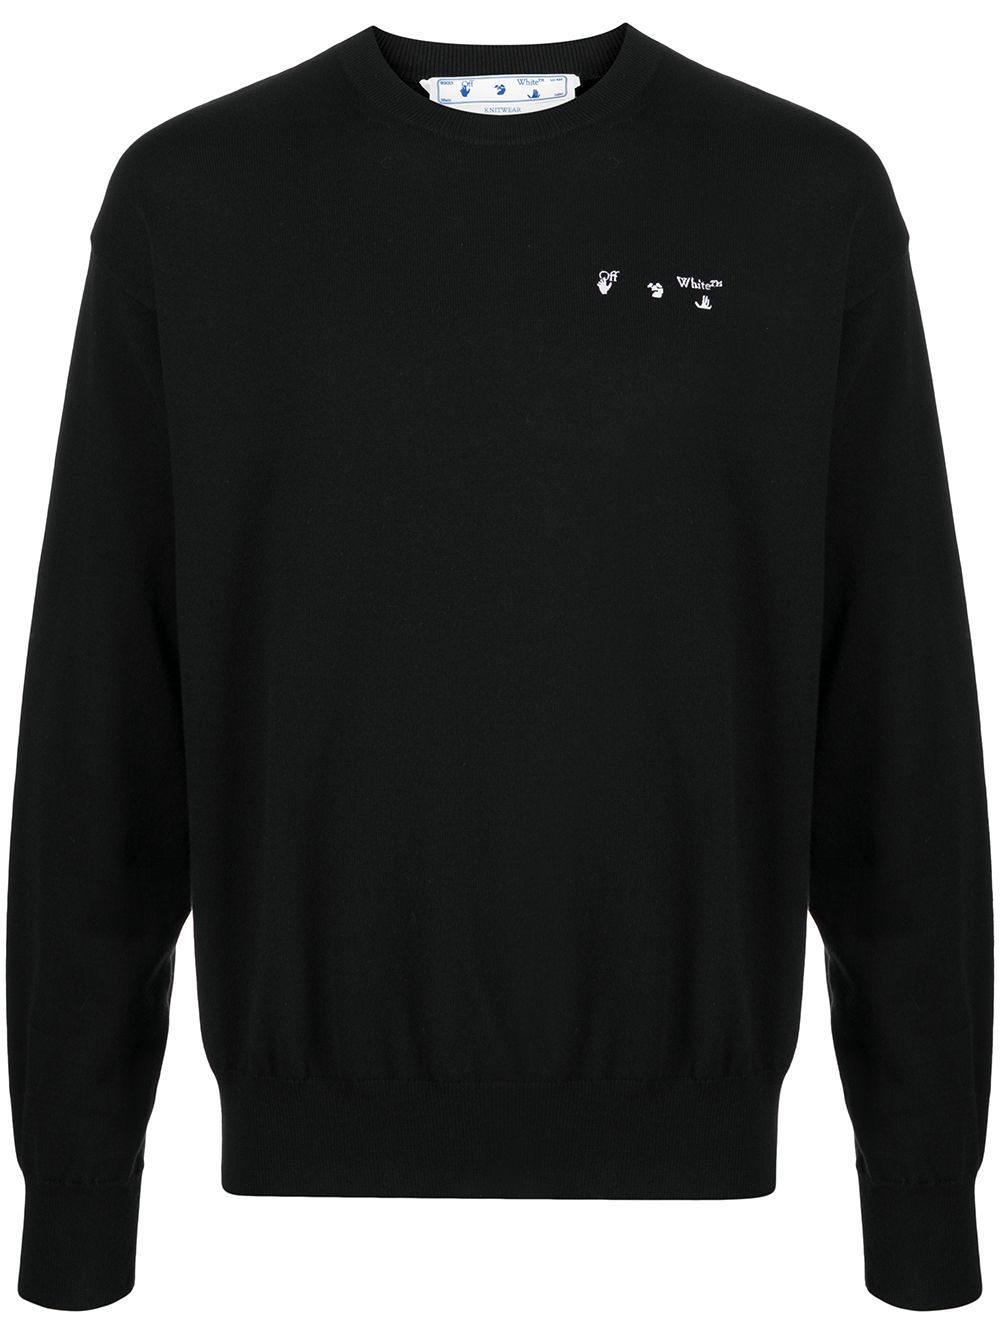 OFF-WHITE Logo Knitted Sweatshirt Black